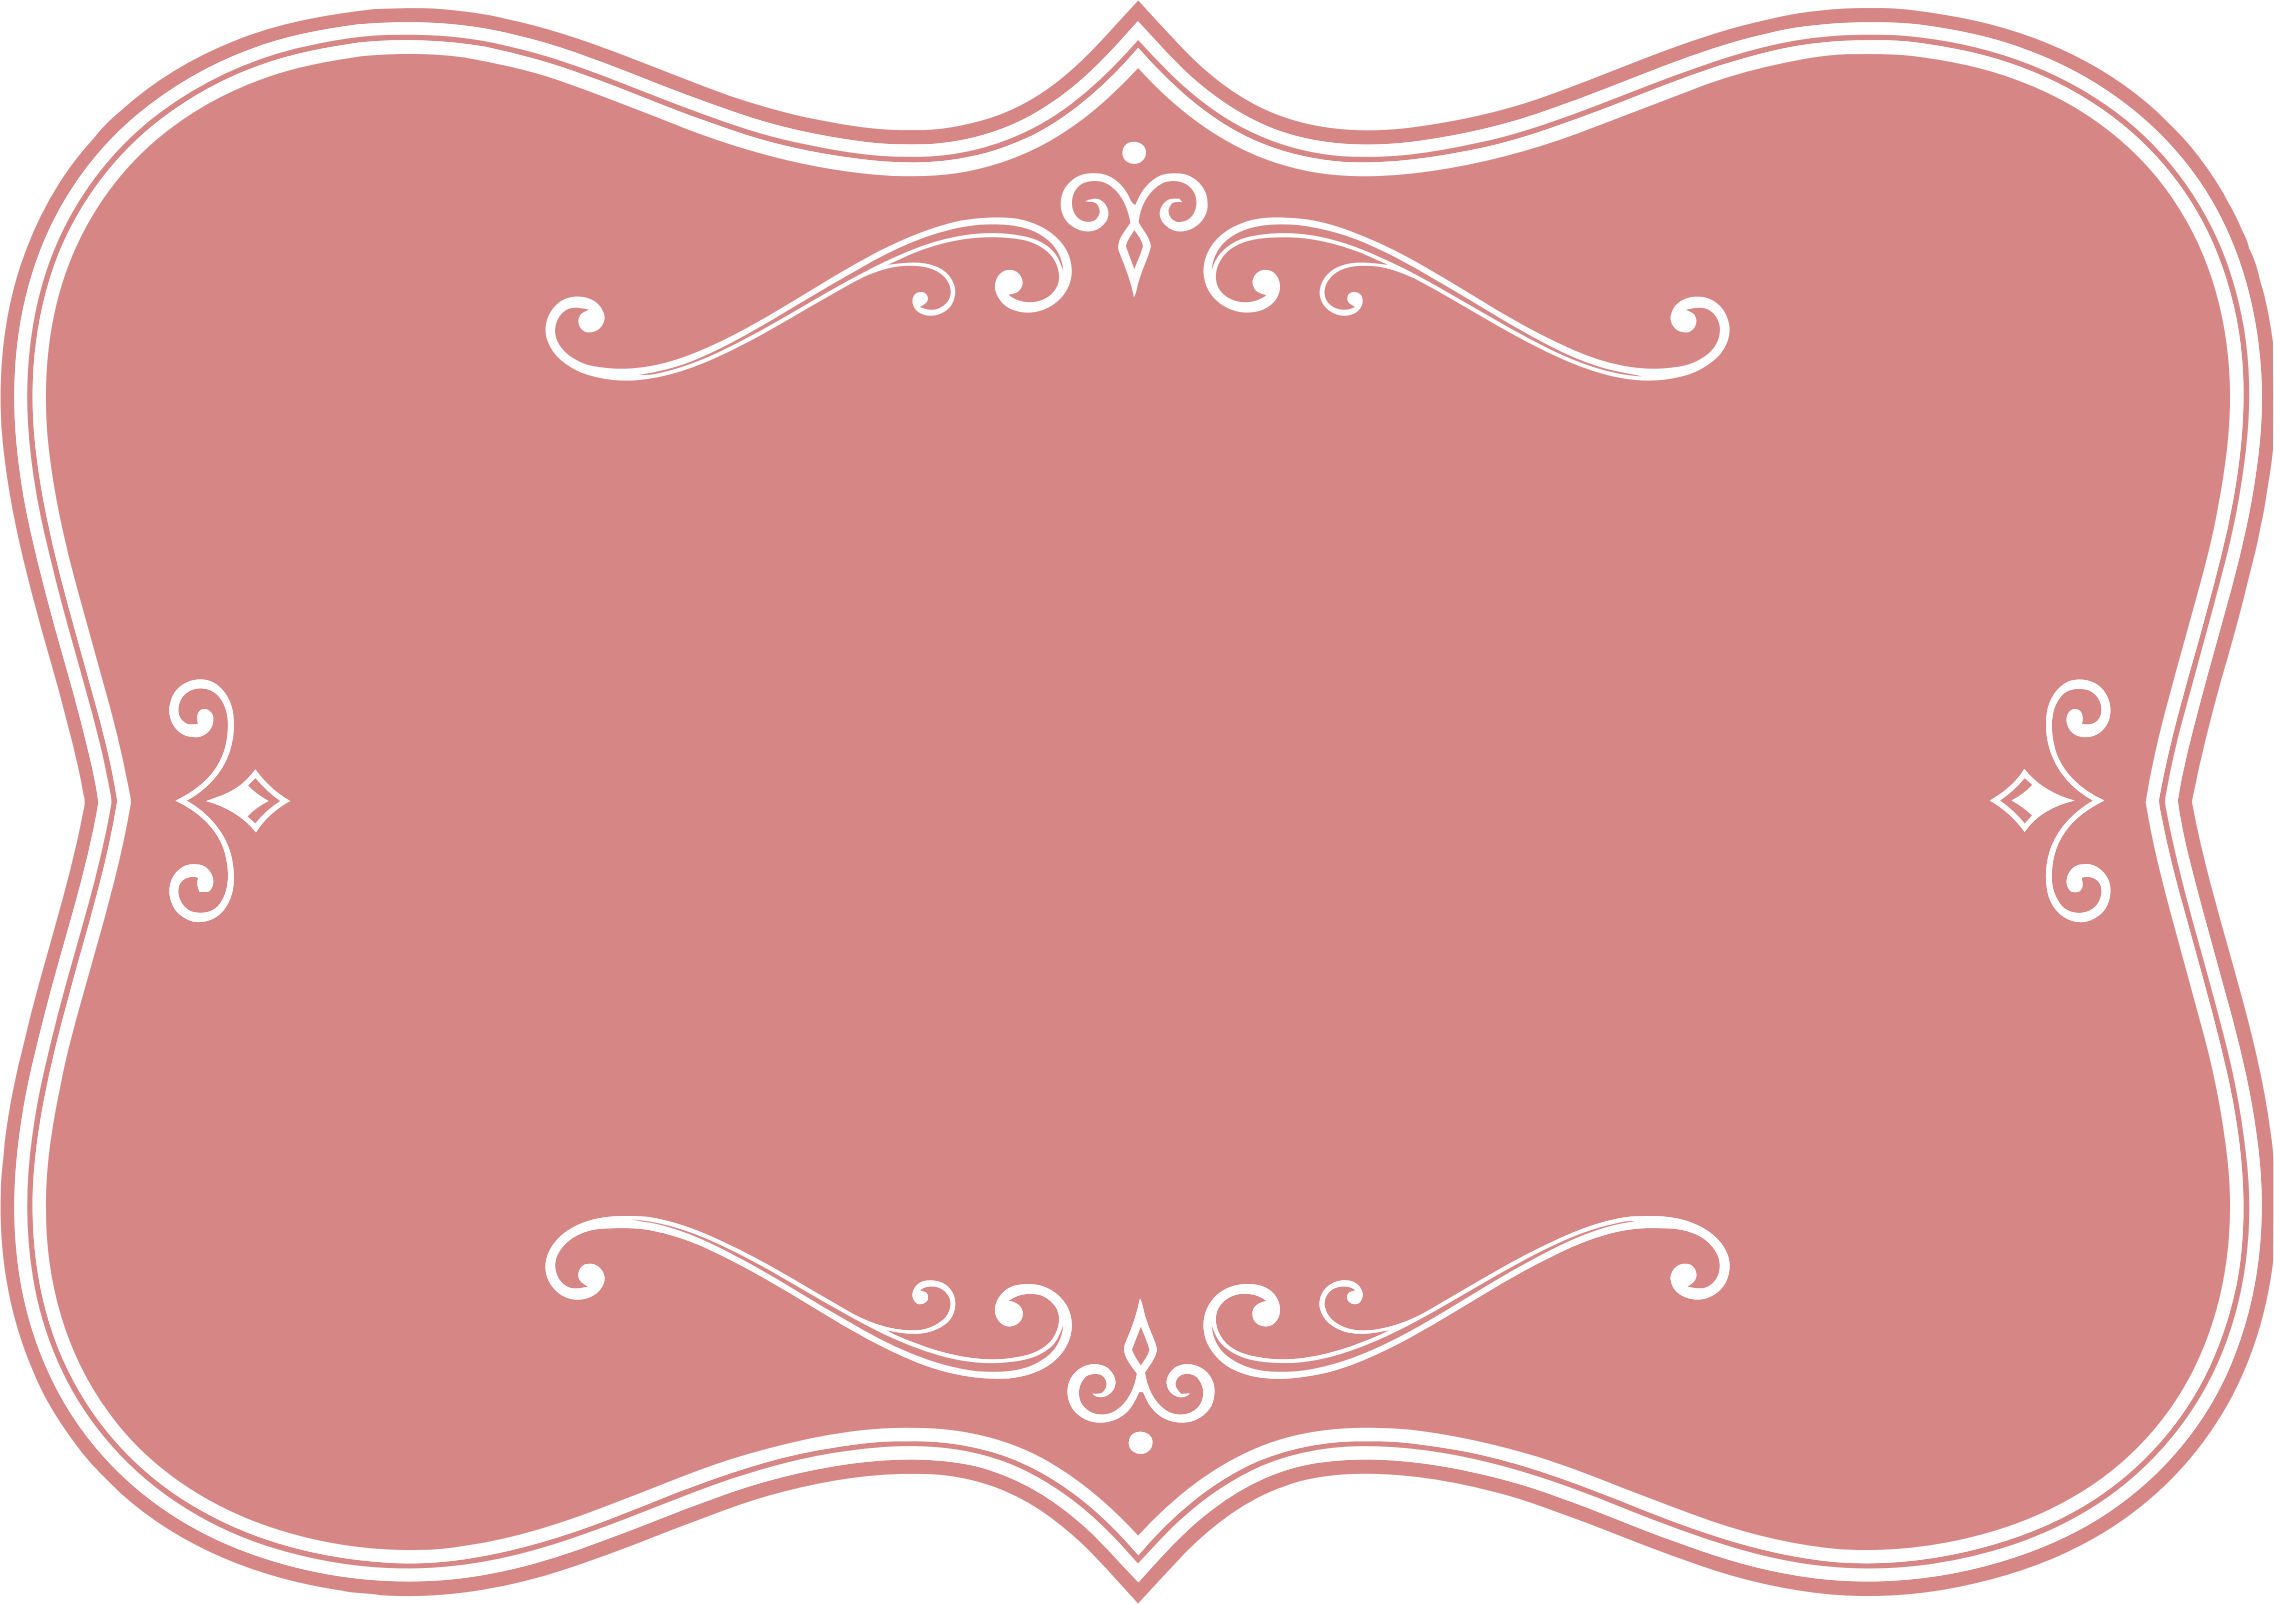 Label frame png. Pin by jeny chique